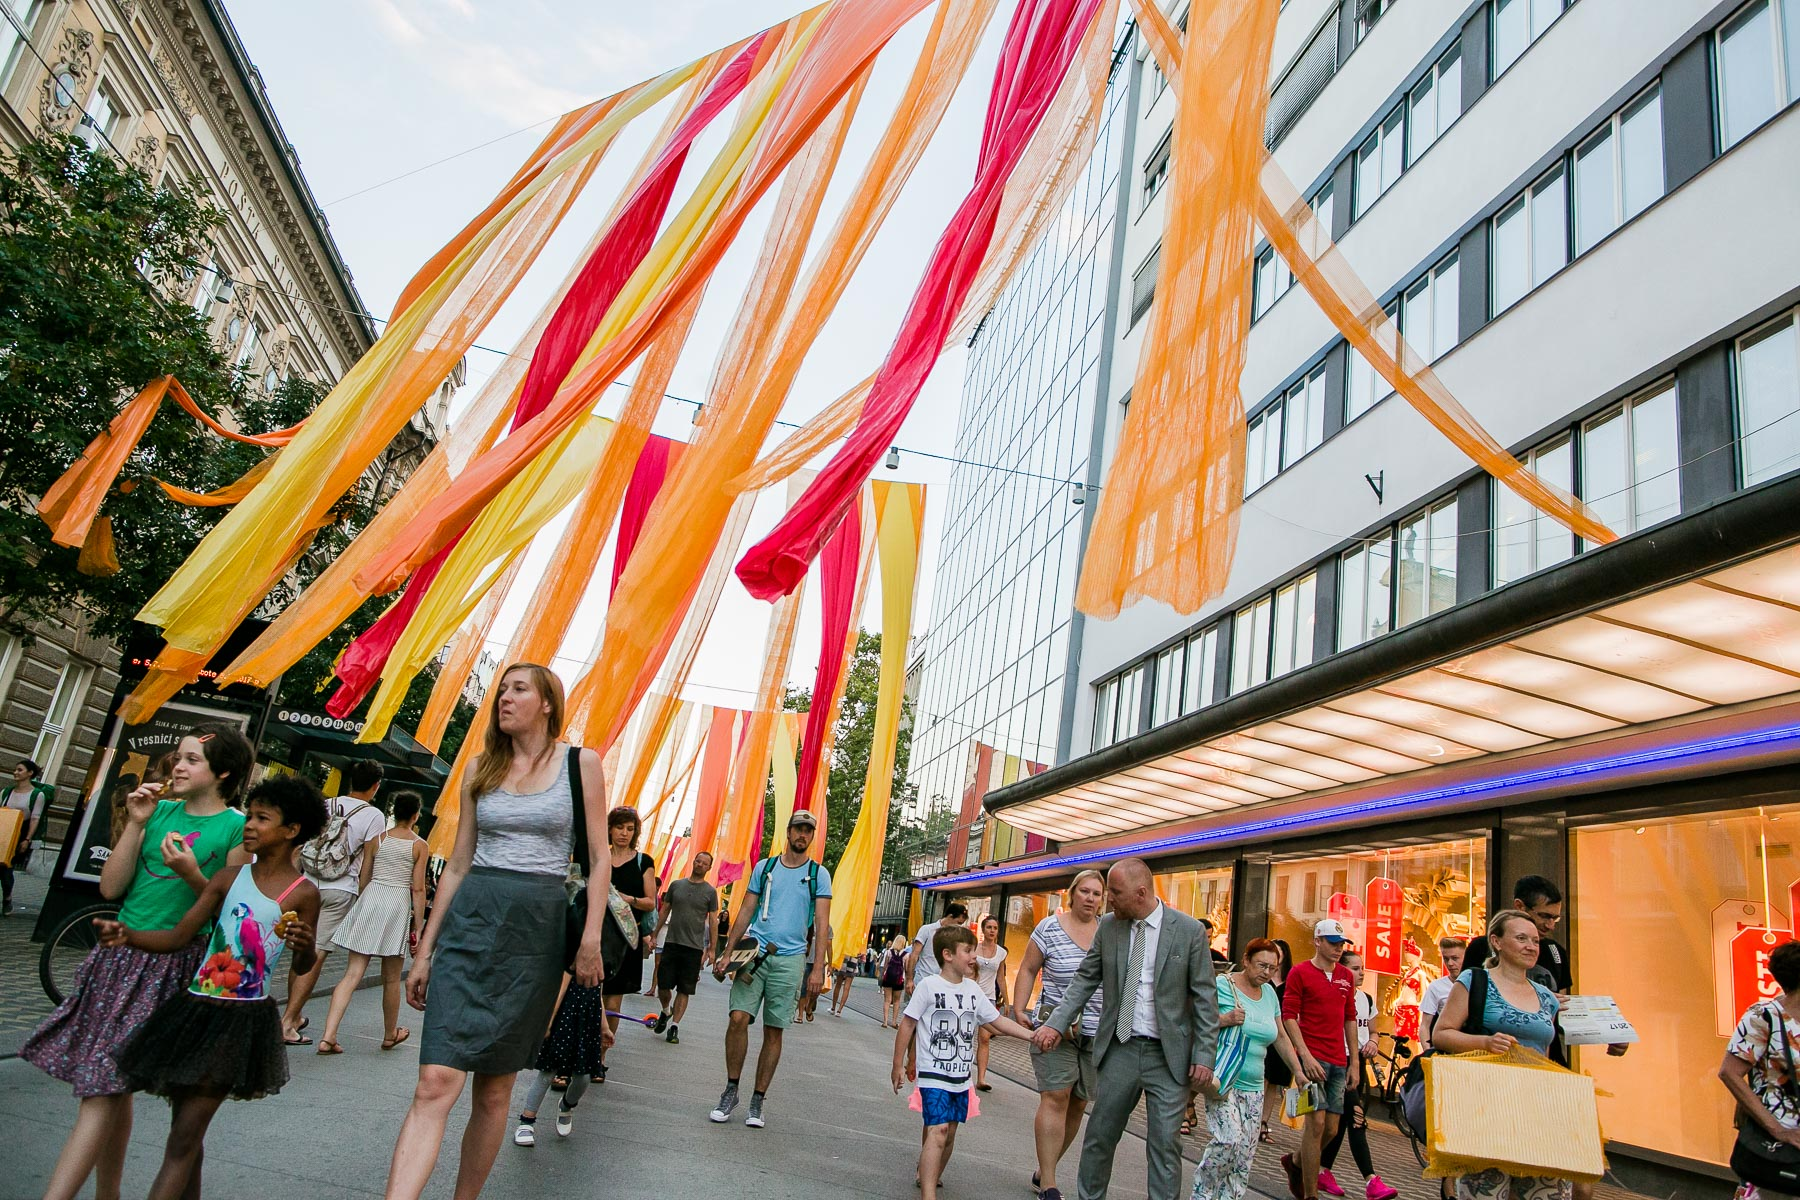 People walk through curtians of festival decoration during the 20th annual Ana Desetnica International Street Theatre Festival in Ljubljana, Slovenia, July 6, 2017.